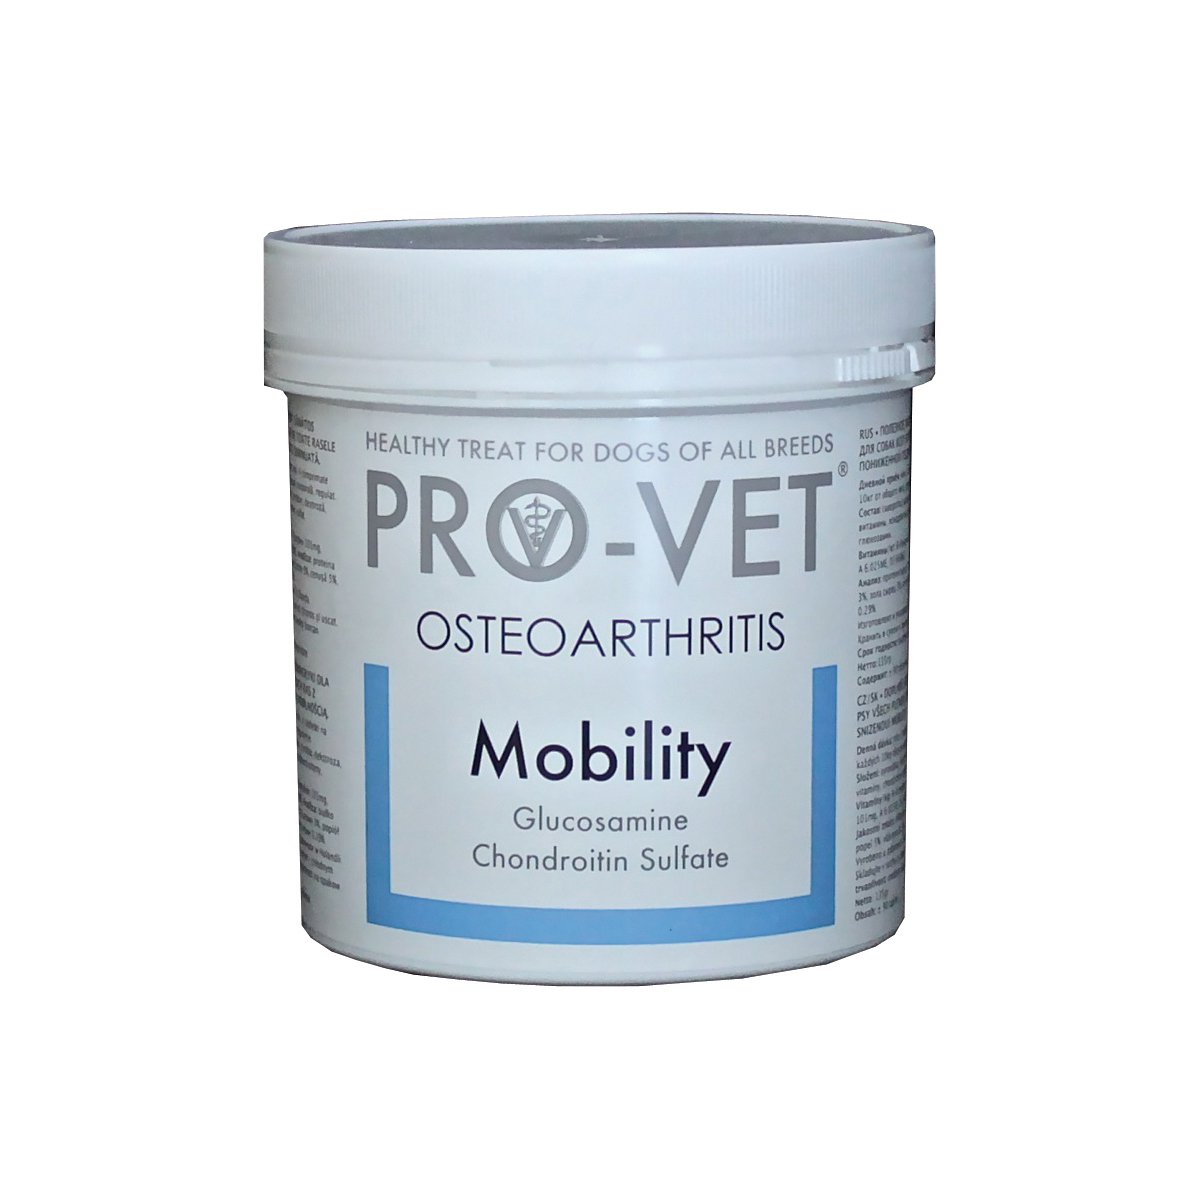 PV DOG PASTILS MOBILITY 90TAB 00001